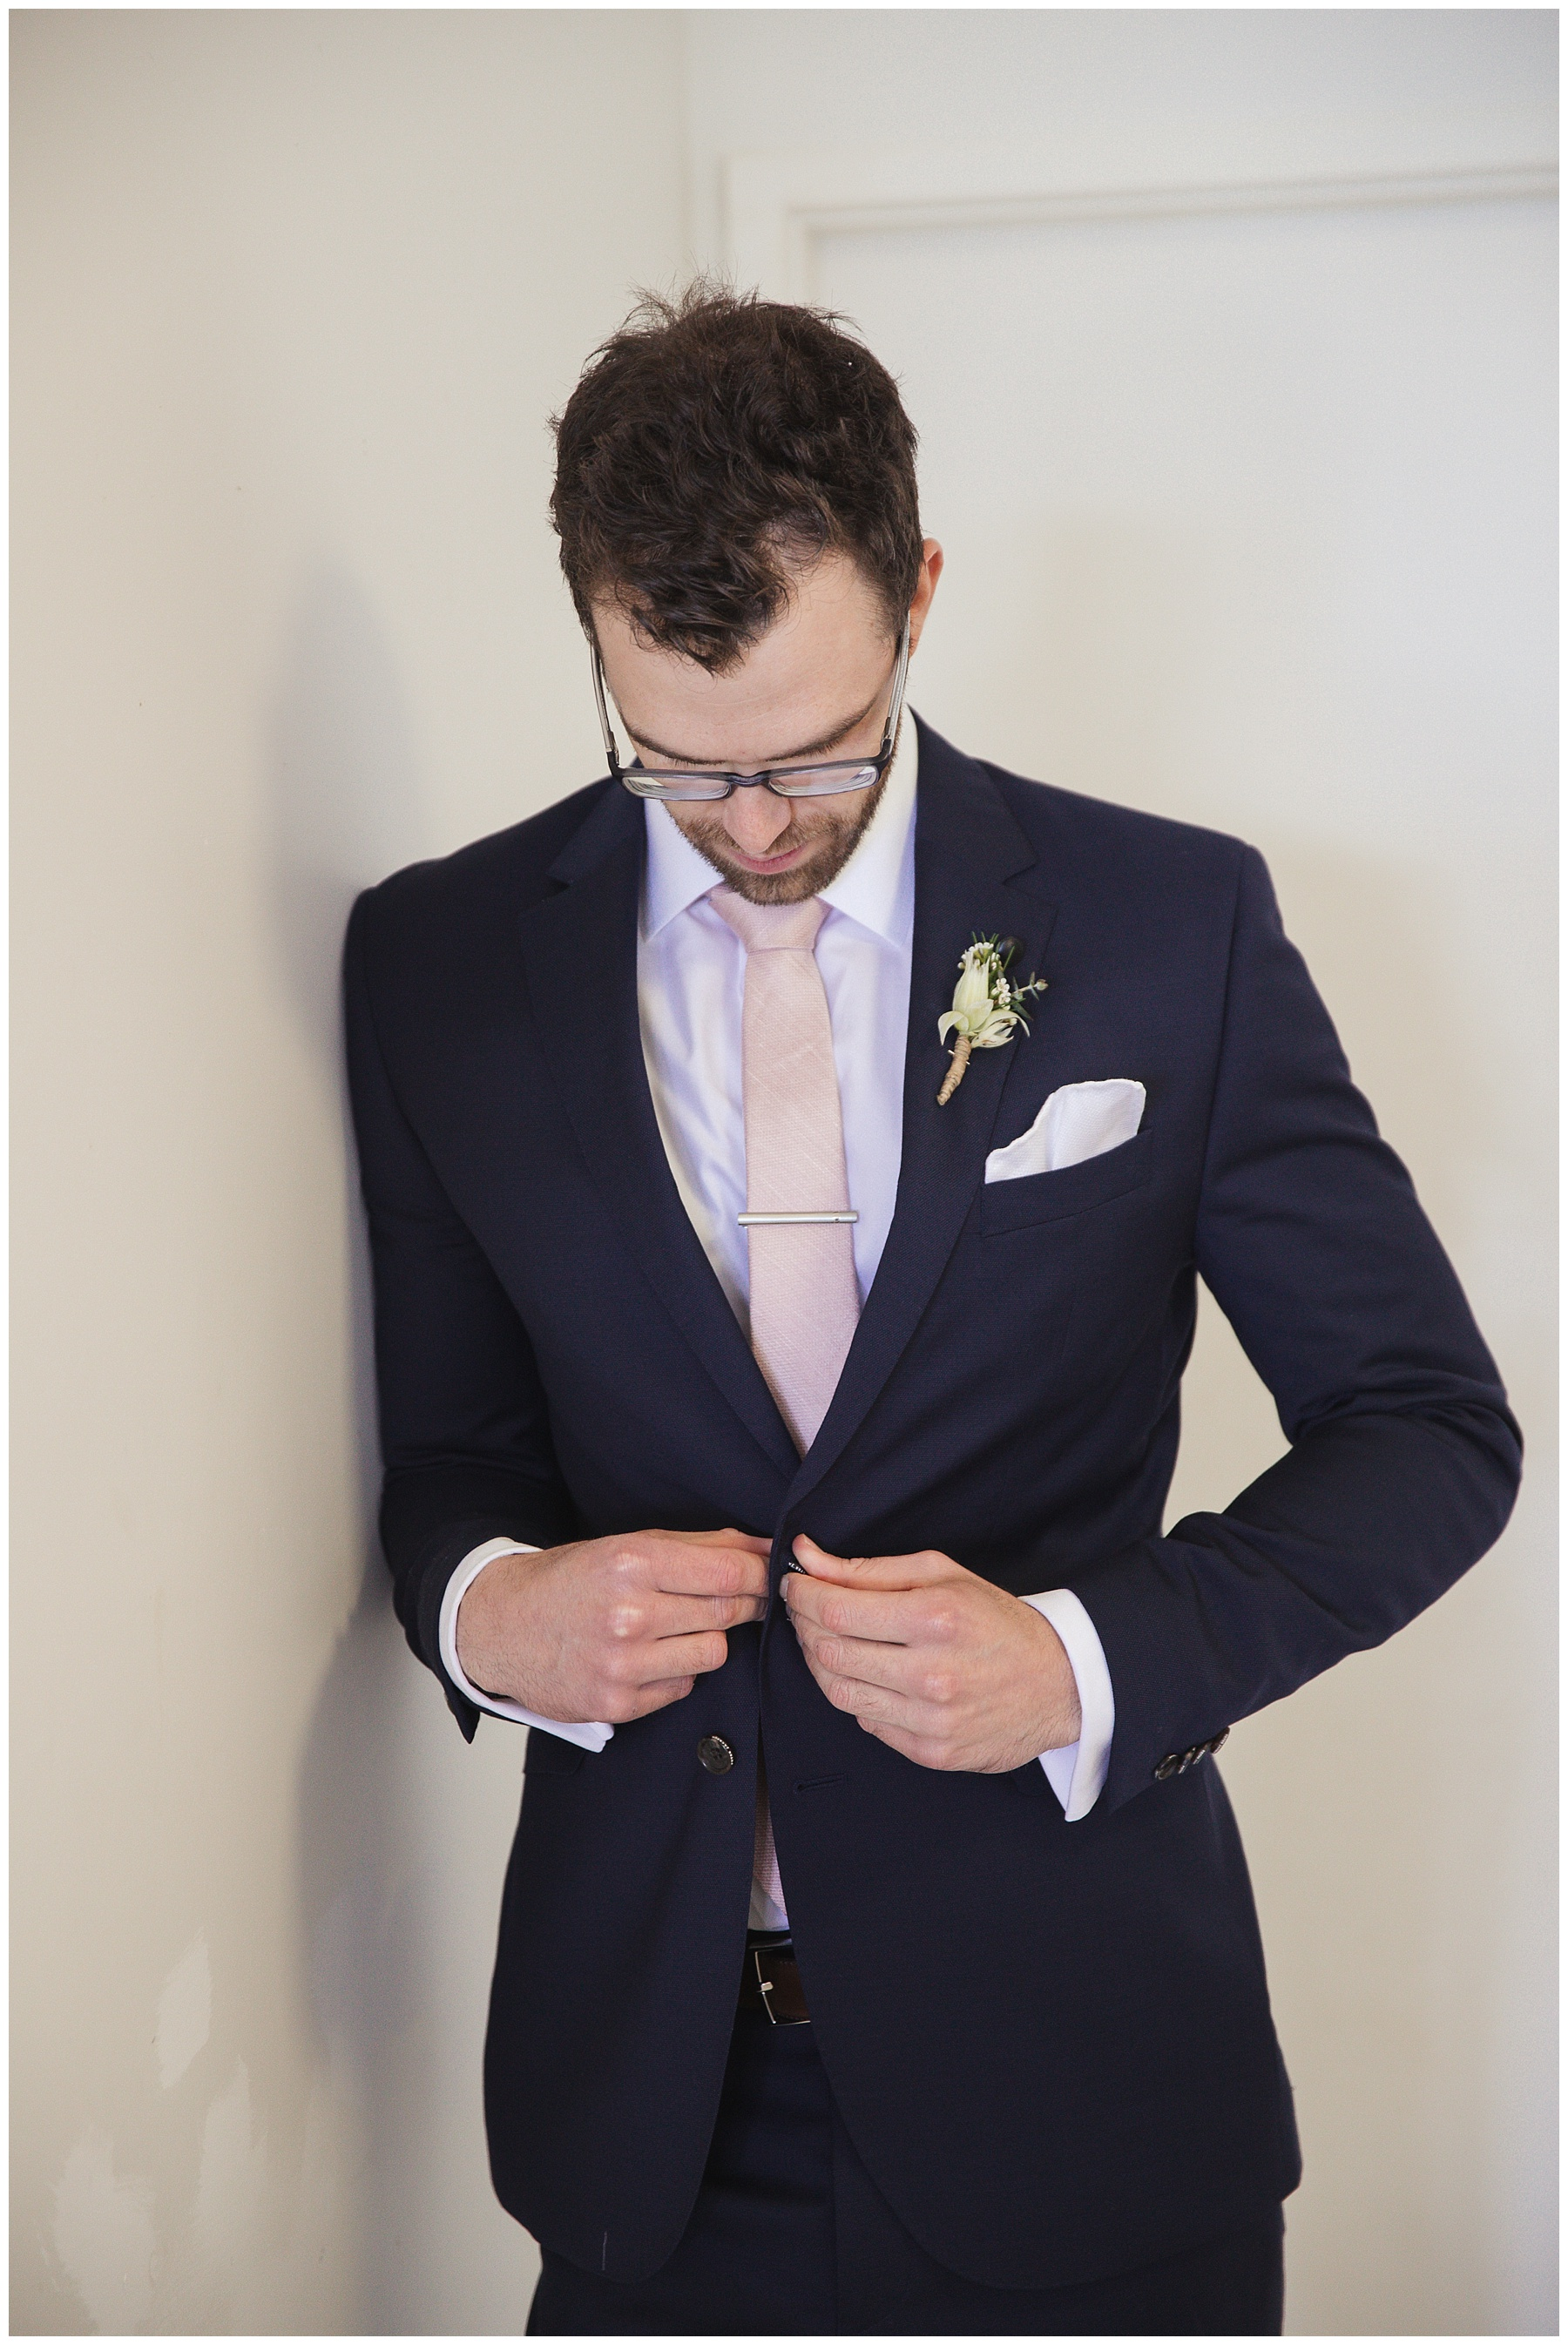 Groom in his suit